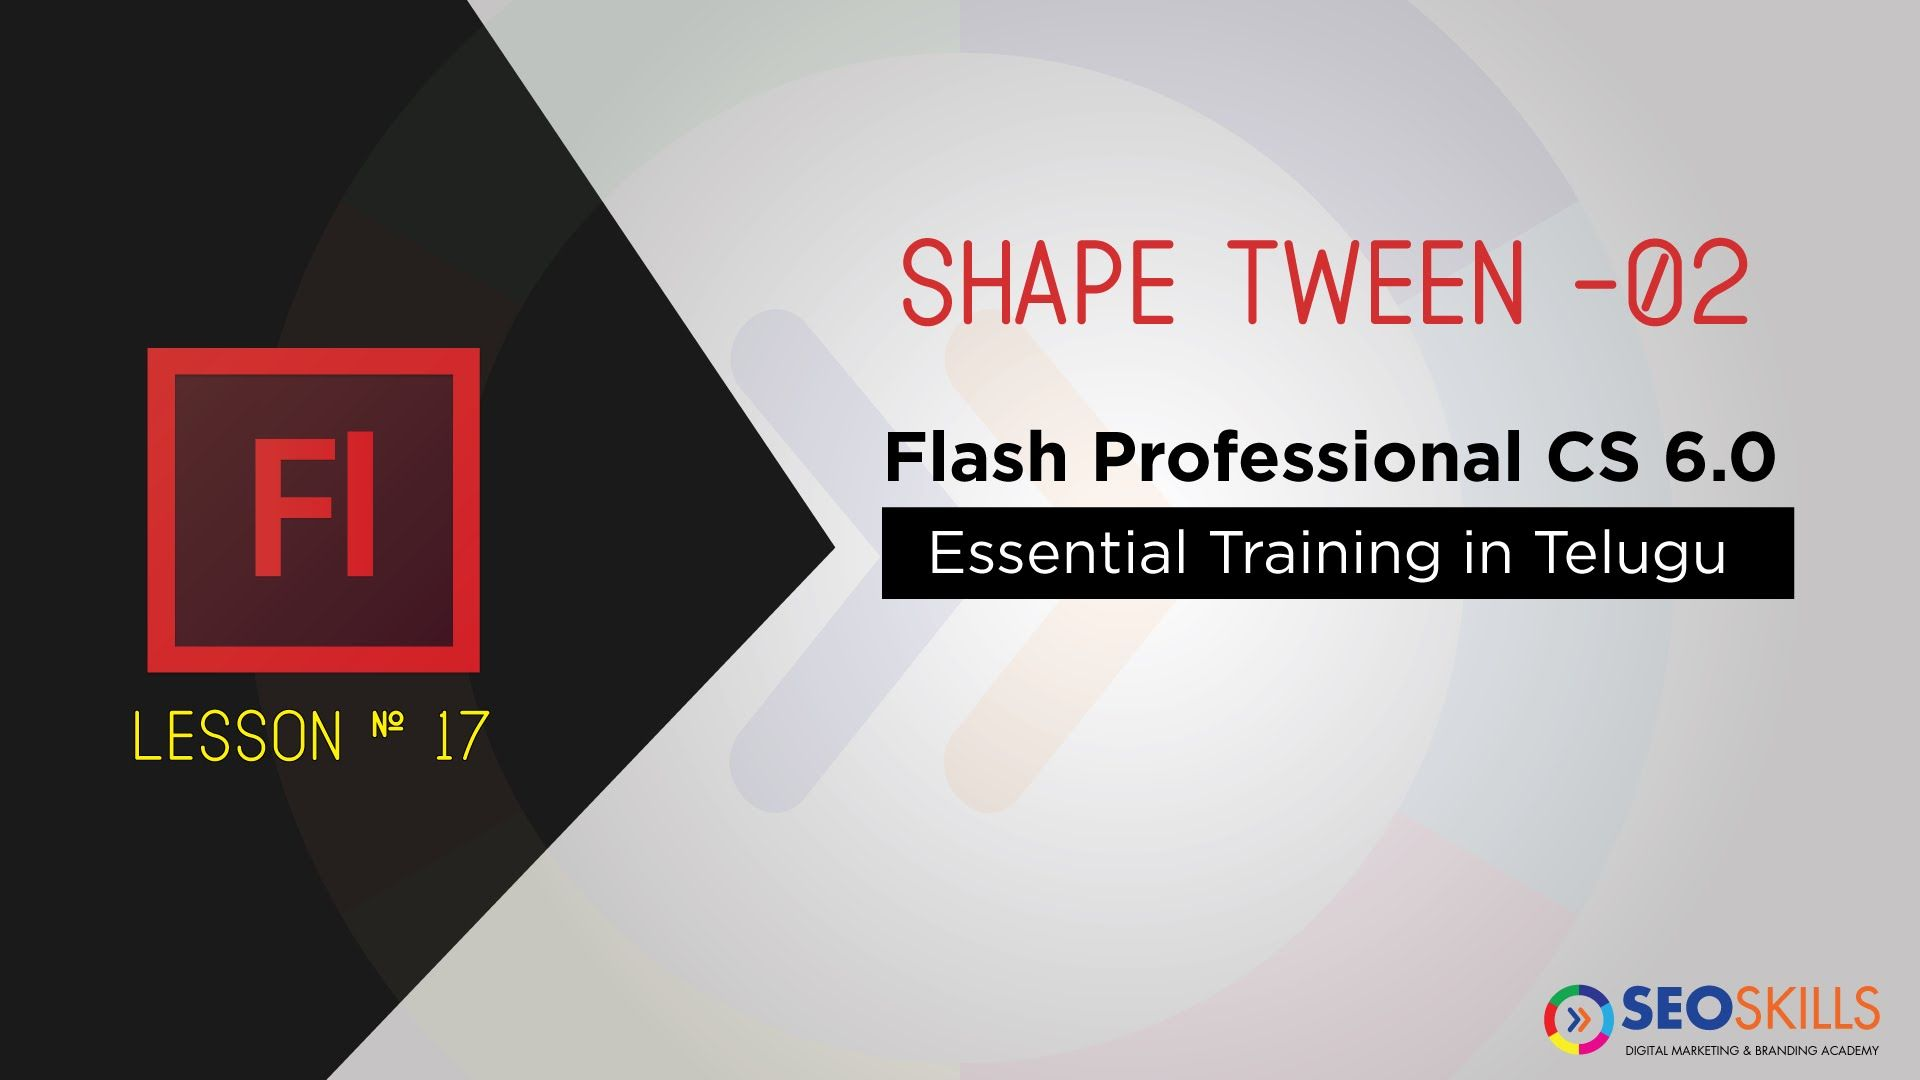 Shape tween for text adobe flash cs6 tutorial in telugu free web shape tween for text adobe flash cs6 tutorial in telugu baditri Gallery